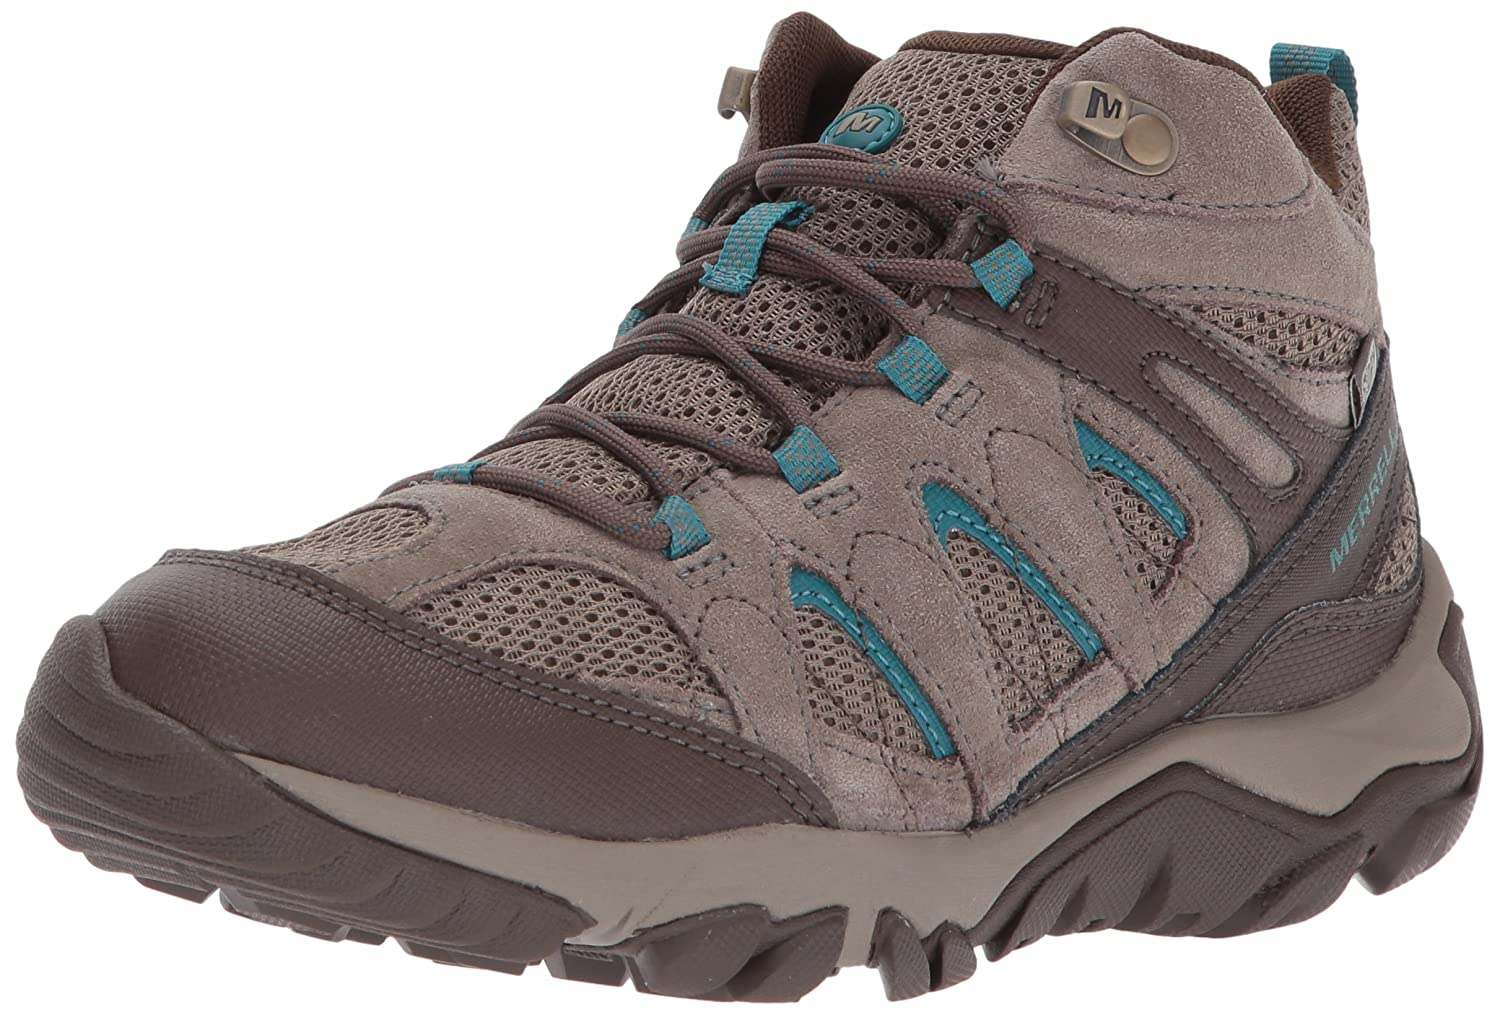 Merrell Women's Outmost Mid Vent Waterproof Hiking Boot B01N2U1DM9 5 B(M) US|Boulder